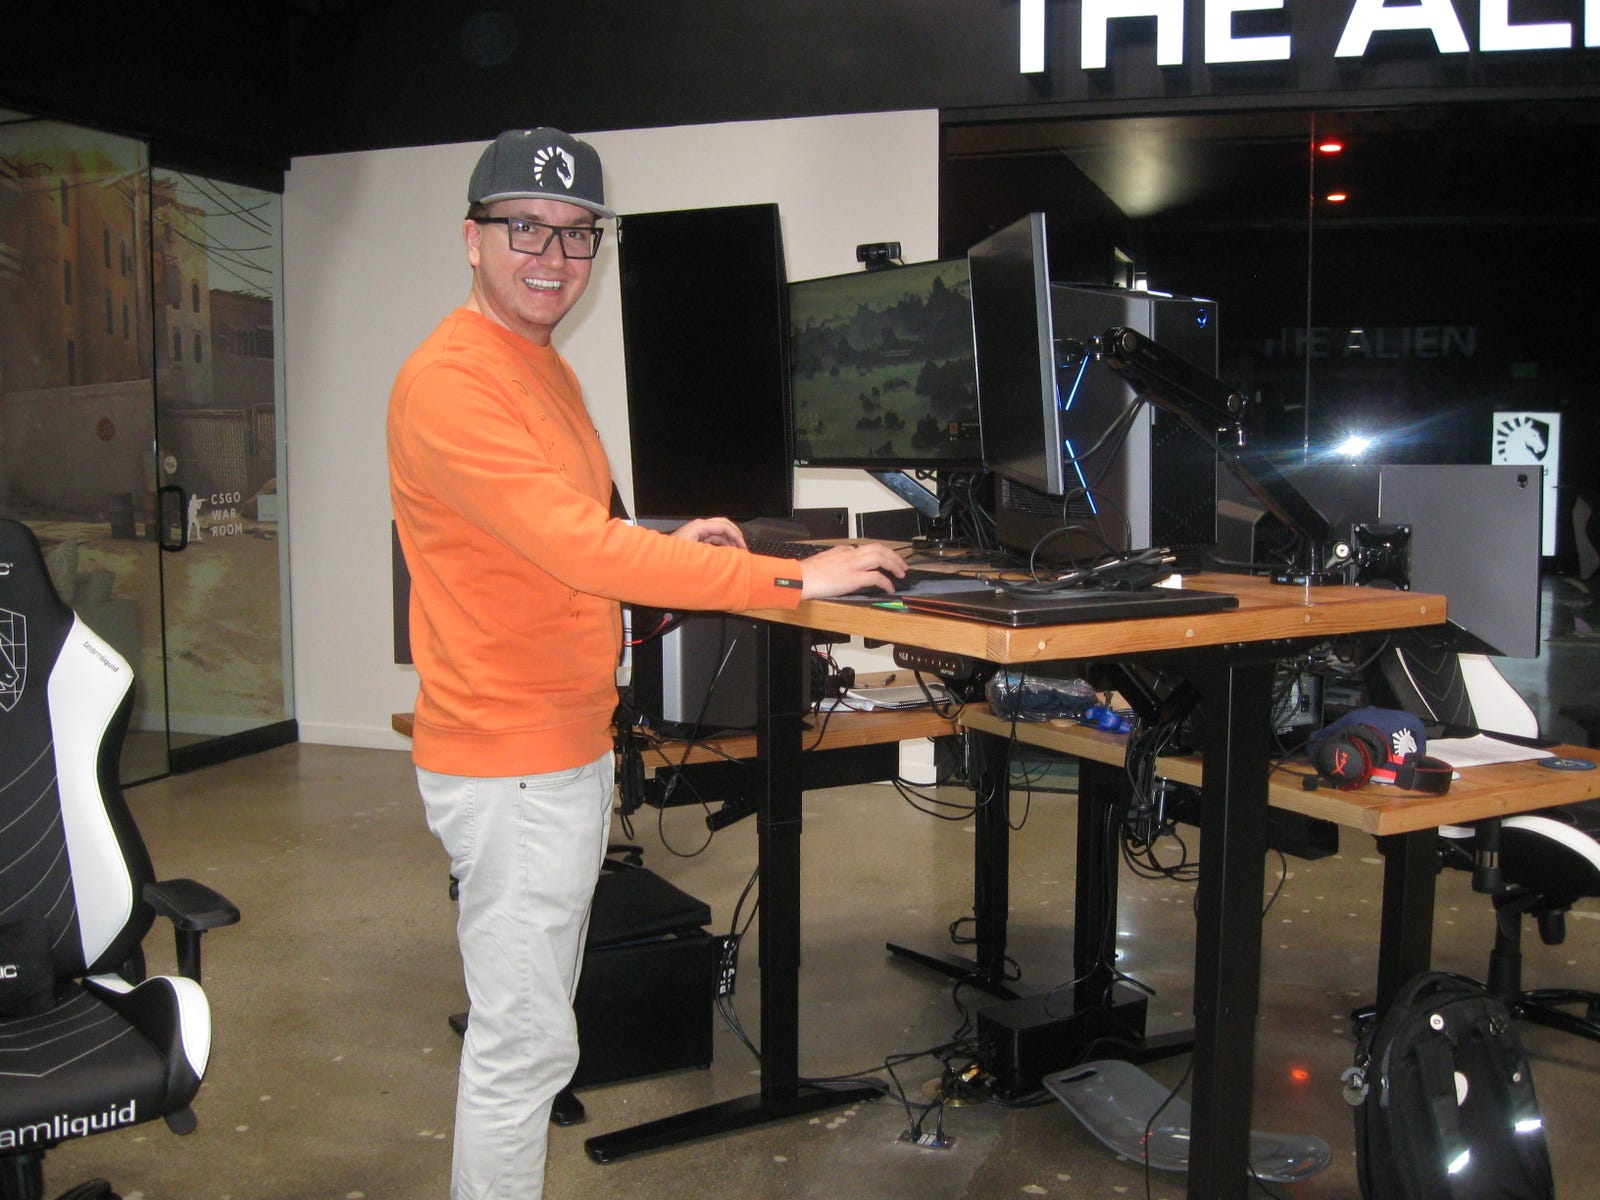 Team Liquid COO Mike Milanov shows off his own adjustable standing desk at the facility.